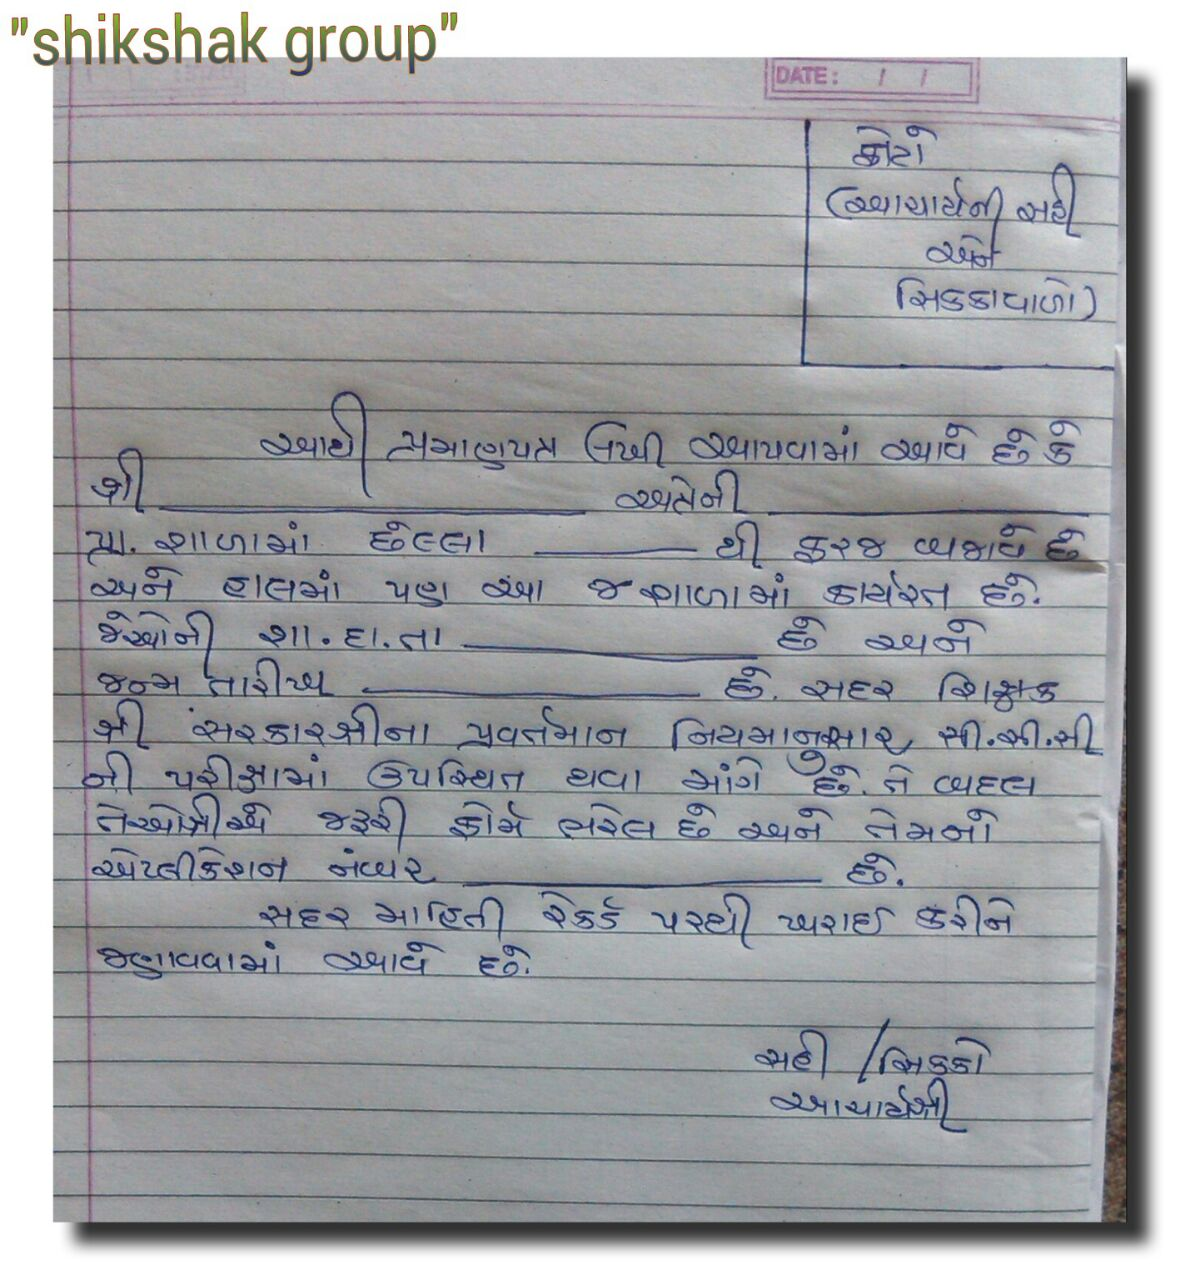 Hindi letter writing samples